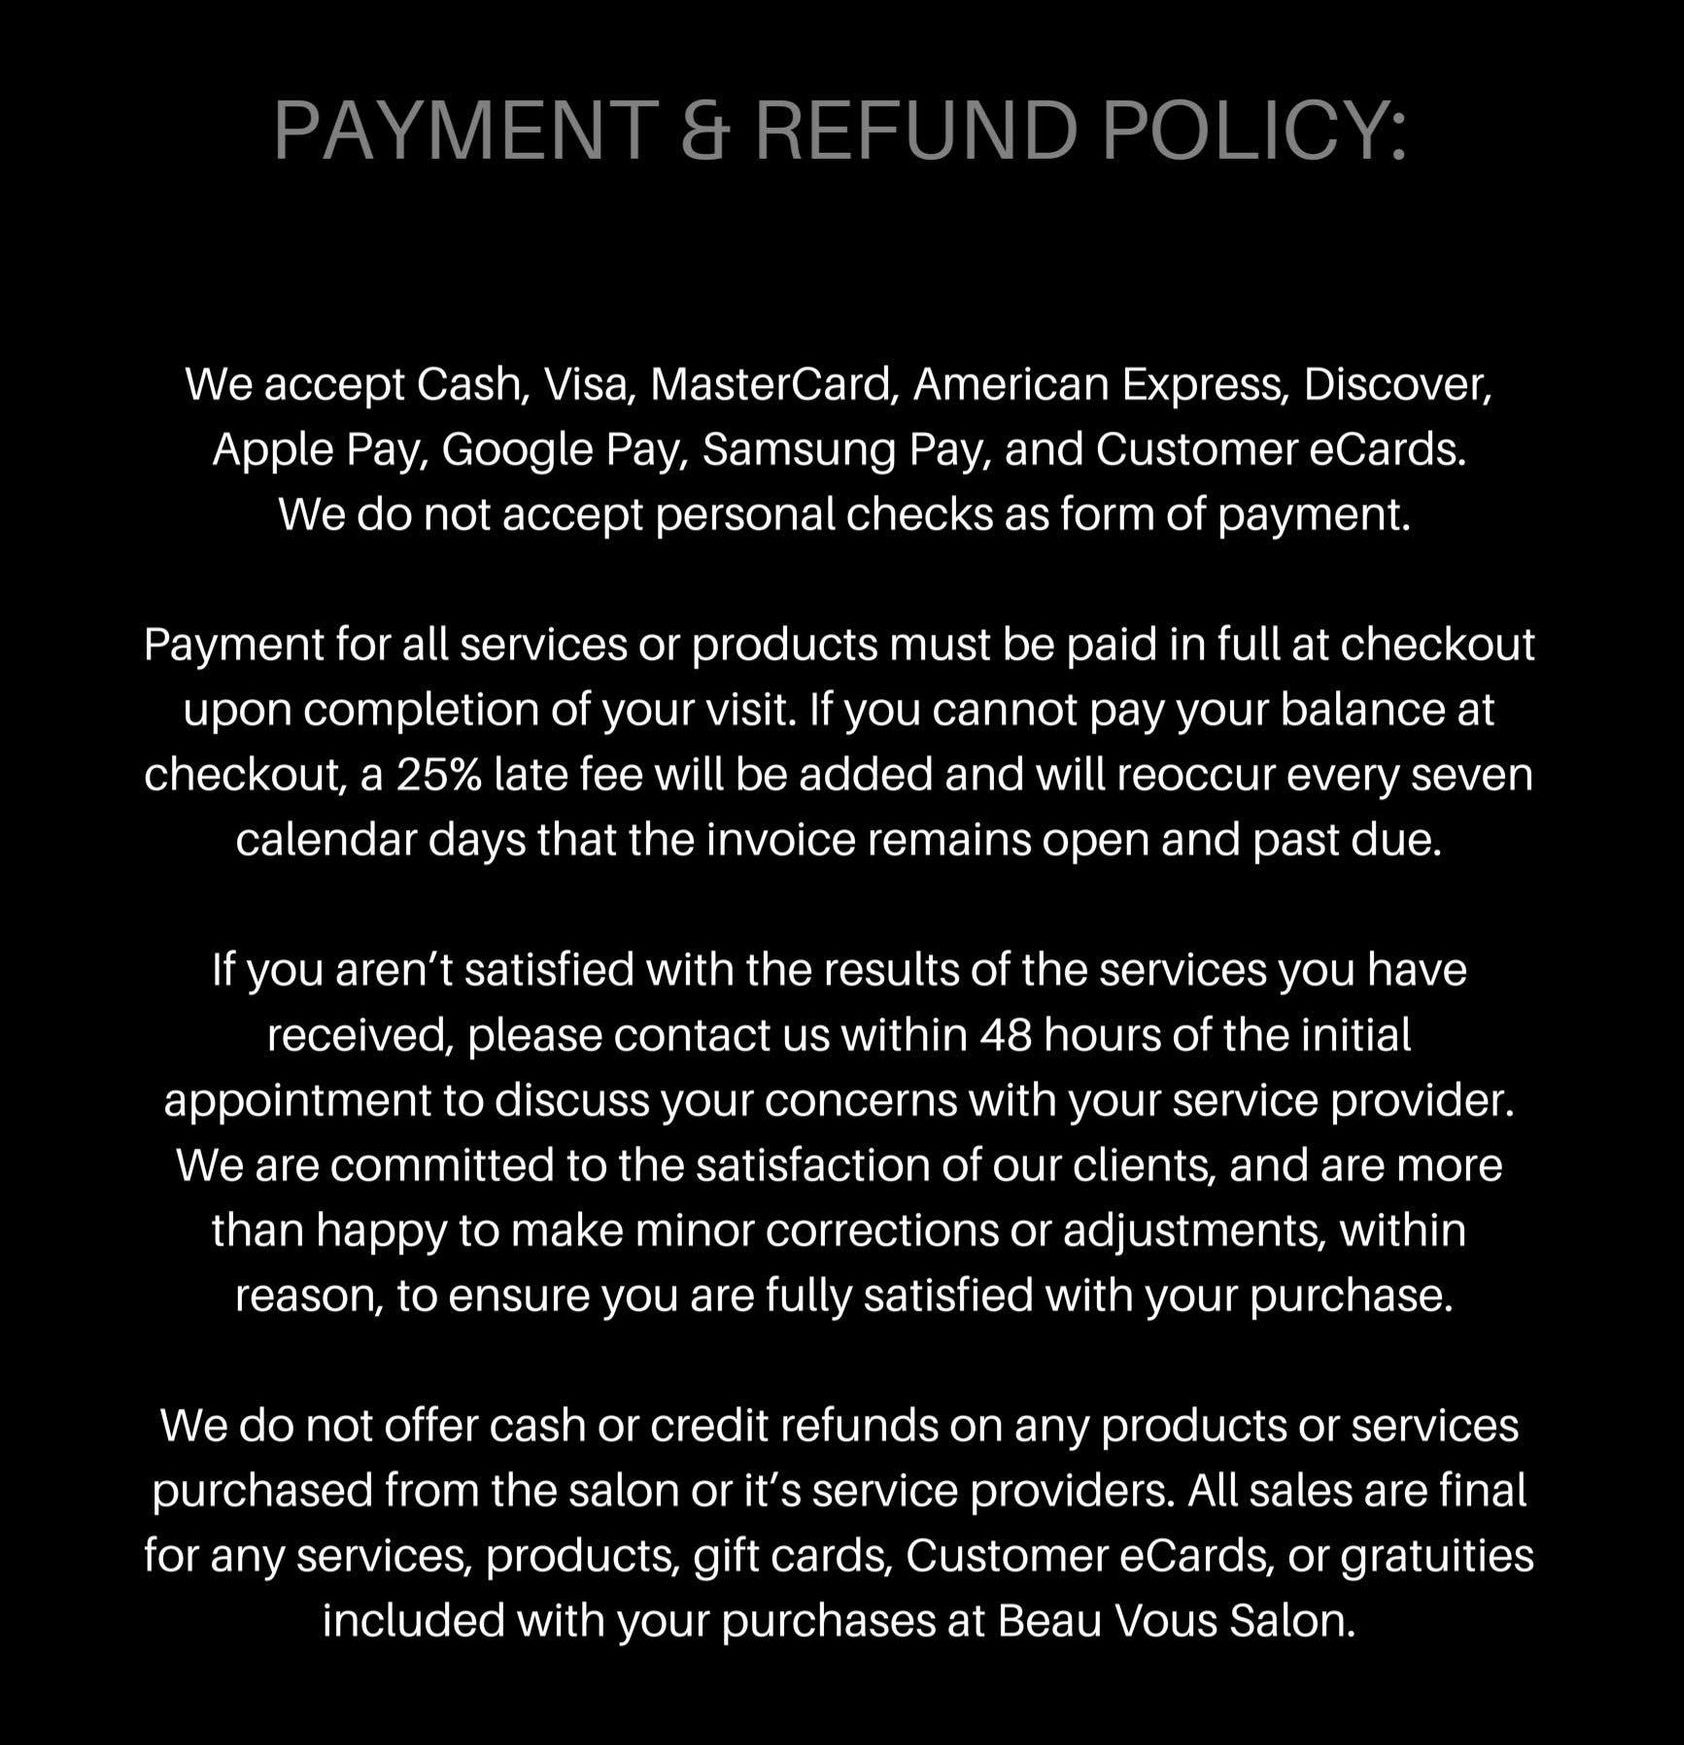 Payment & Refund Policy